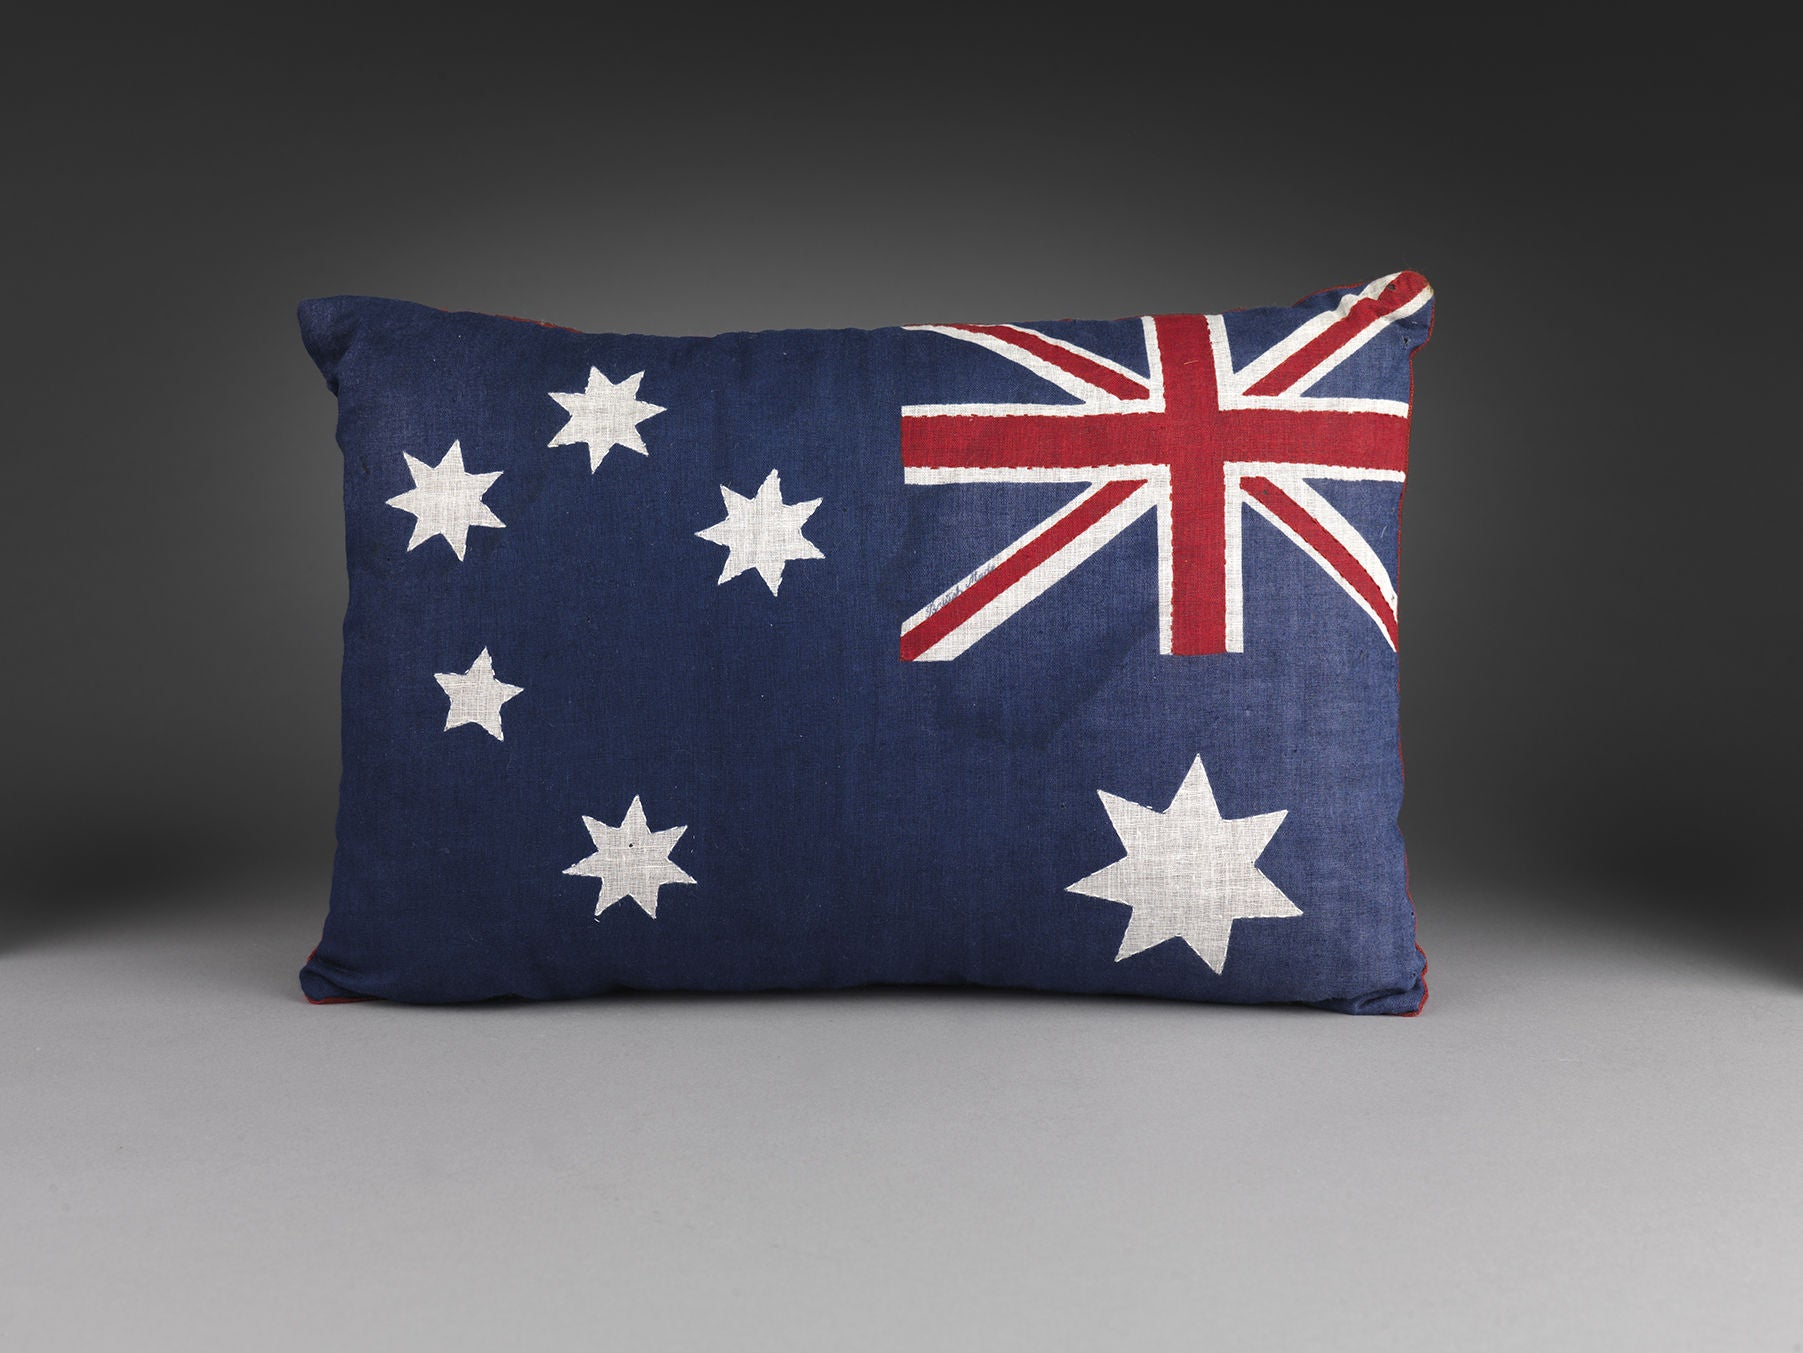 A Small Vintage Flag Cushion